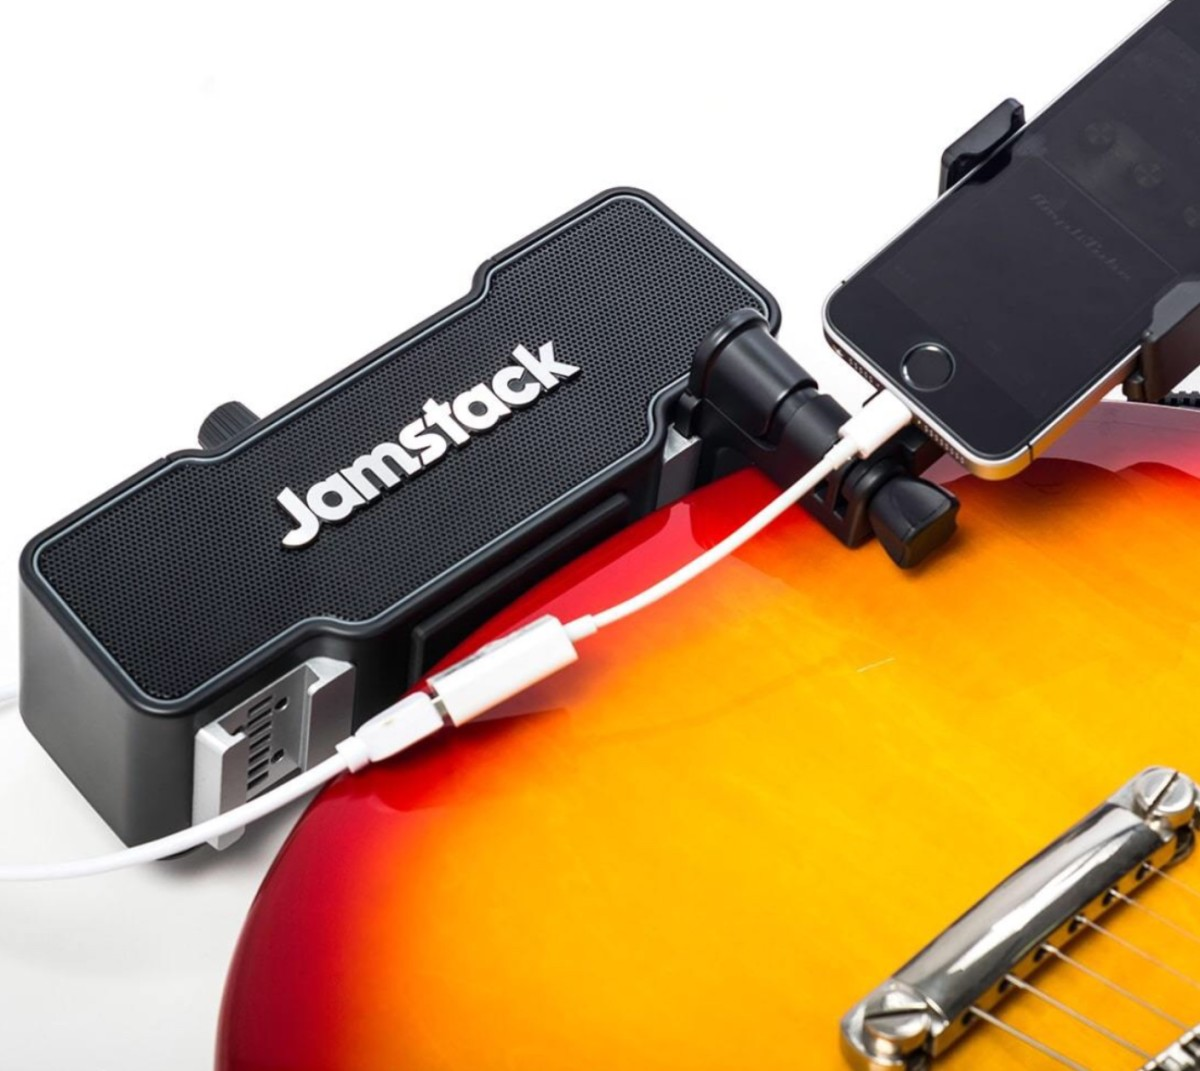 the-jamstick-speaker-makes-an-electric-guitar-truly-portable